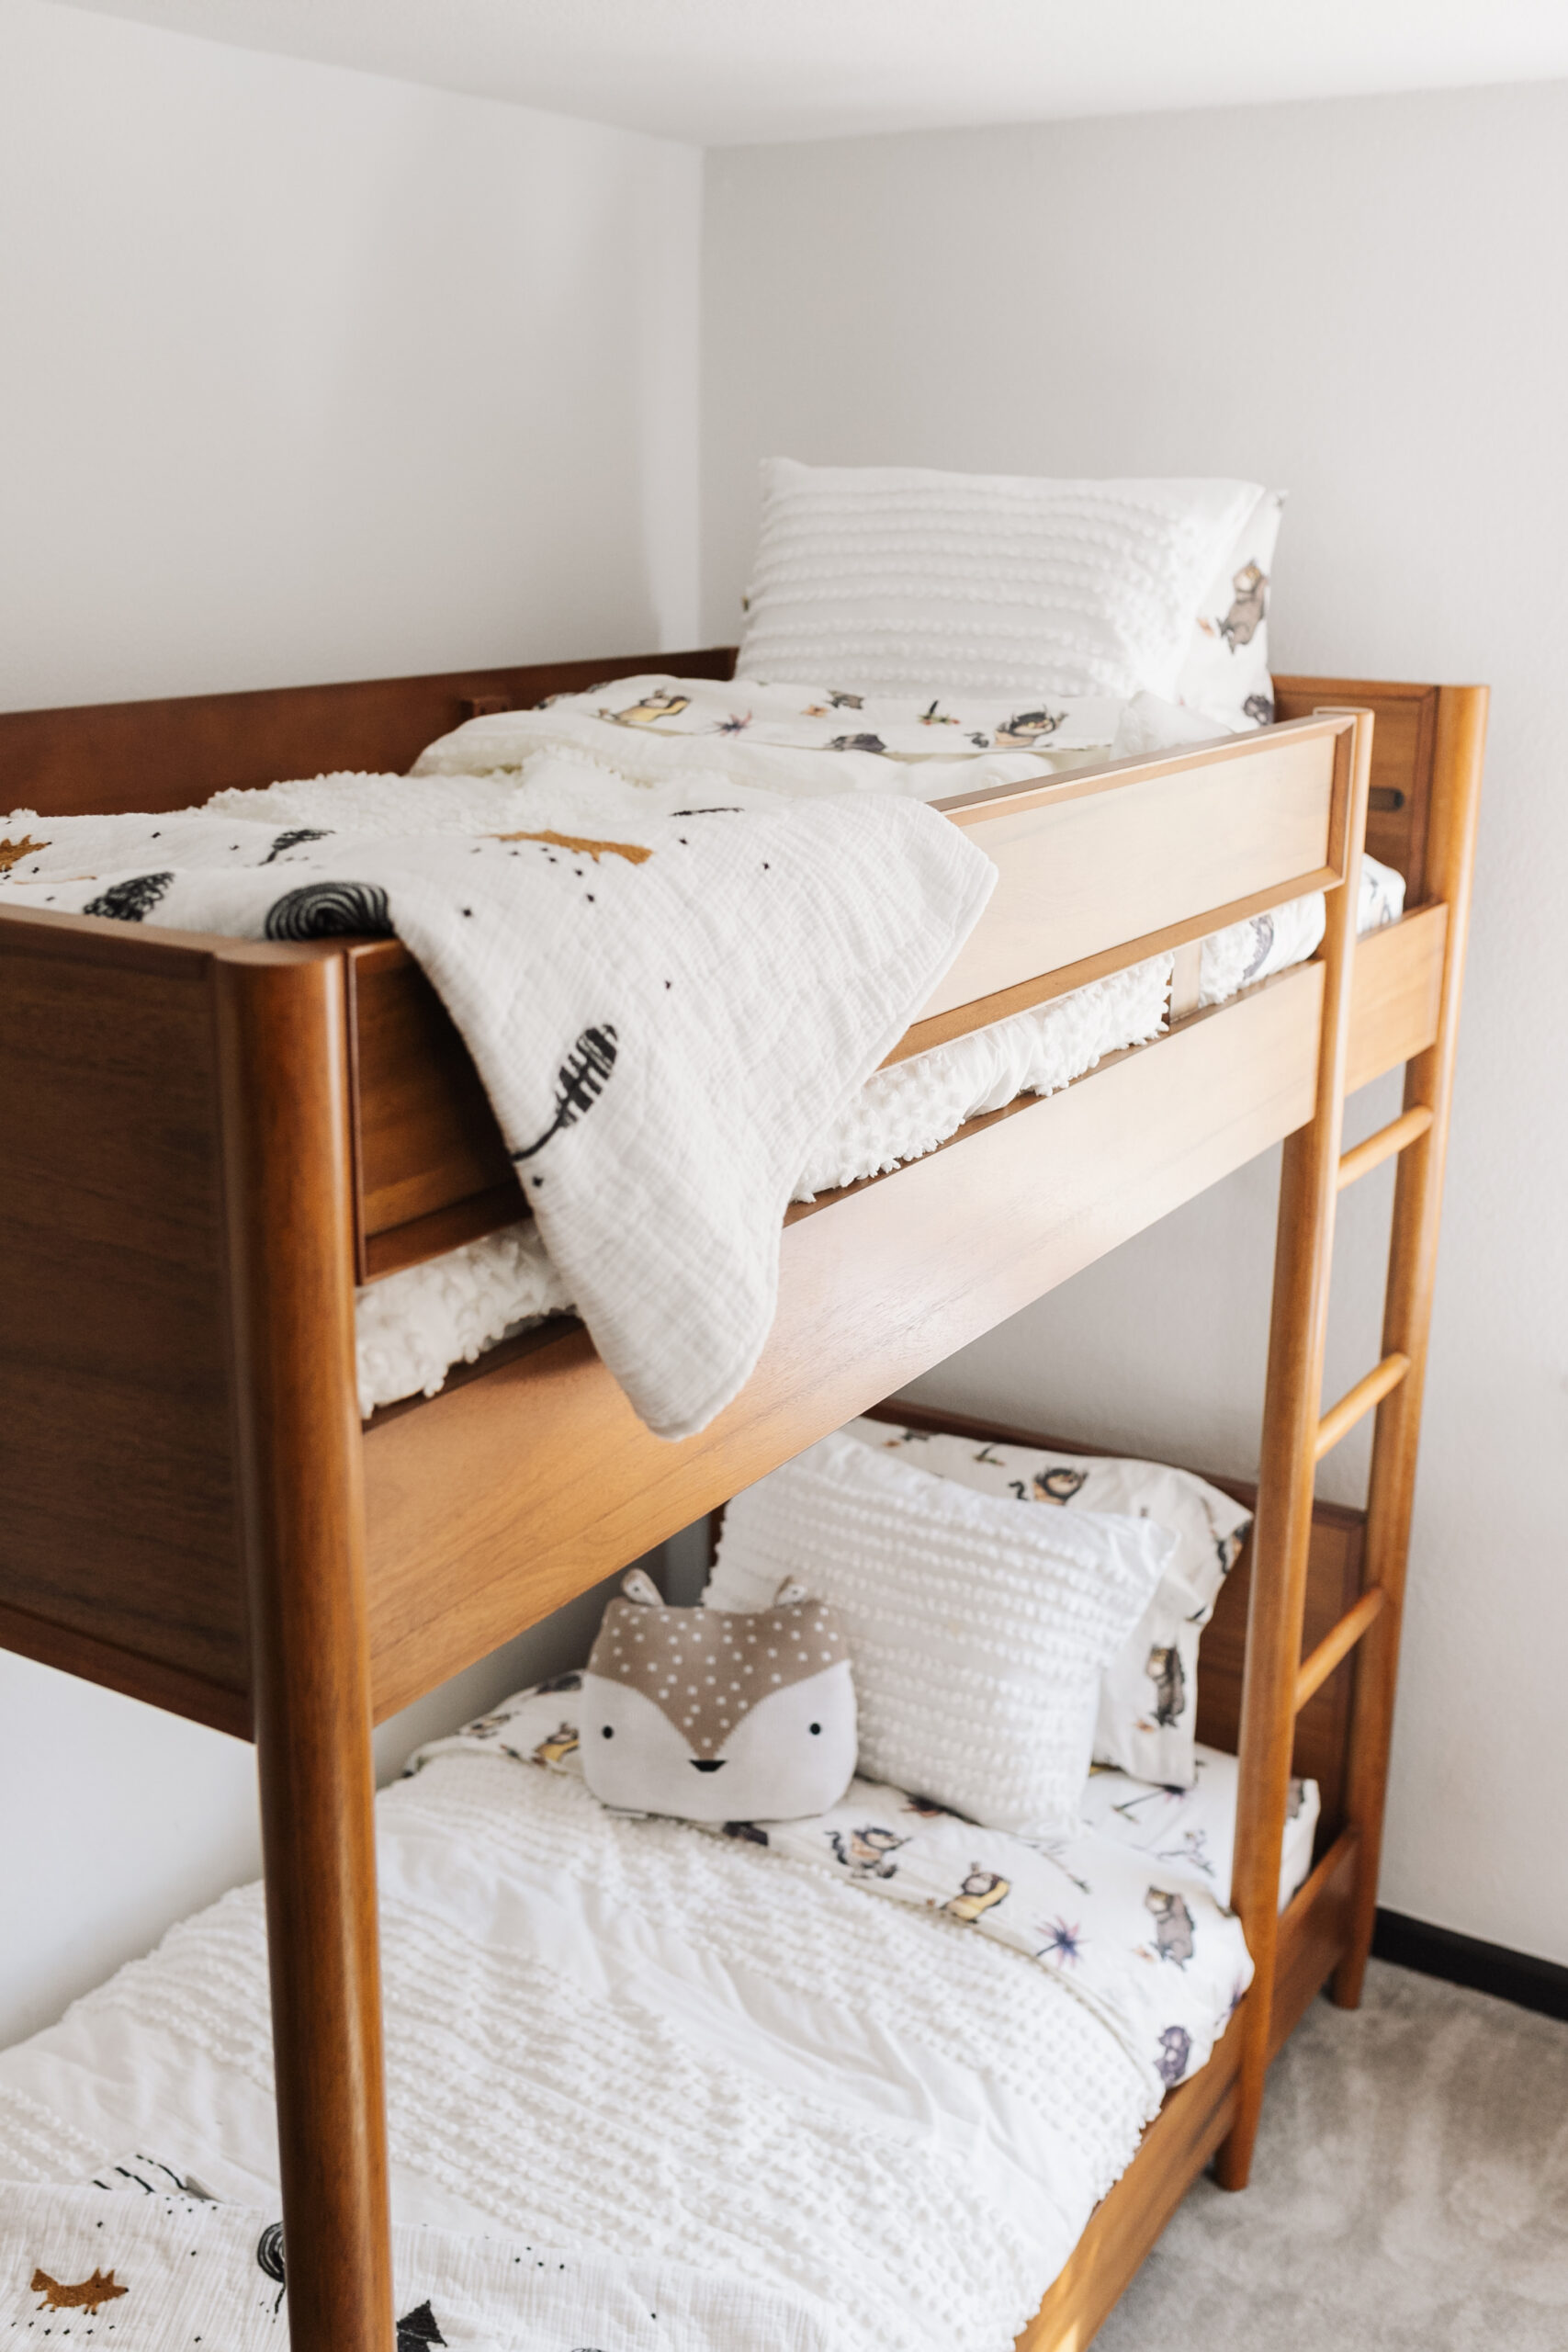 the details and quality of this WestElm x PBK bunk bed is devine! #thelovedesignedlife #westelmxpbk #modernmountainbunkbeds #bunkbeds